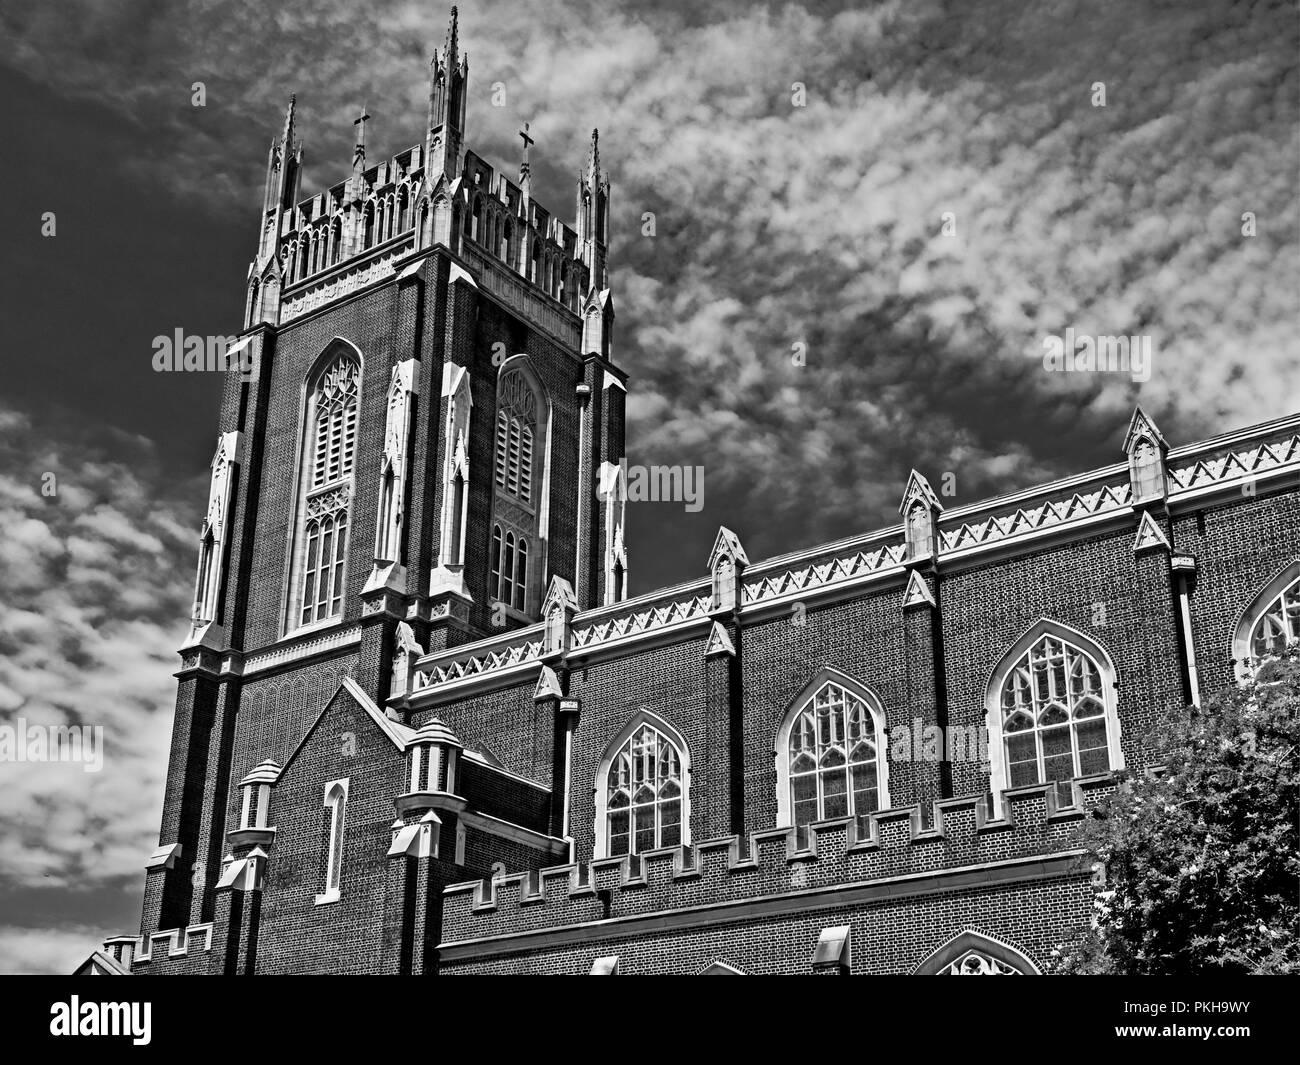 New Orleans, LA USA - May 9, 2018  -  Holy Name Of Jesus Catholic Church Loyola Campus off of St. Charles Ave in B&W - Stock Image